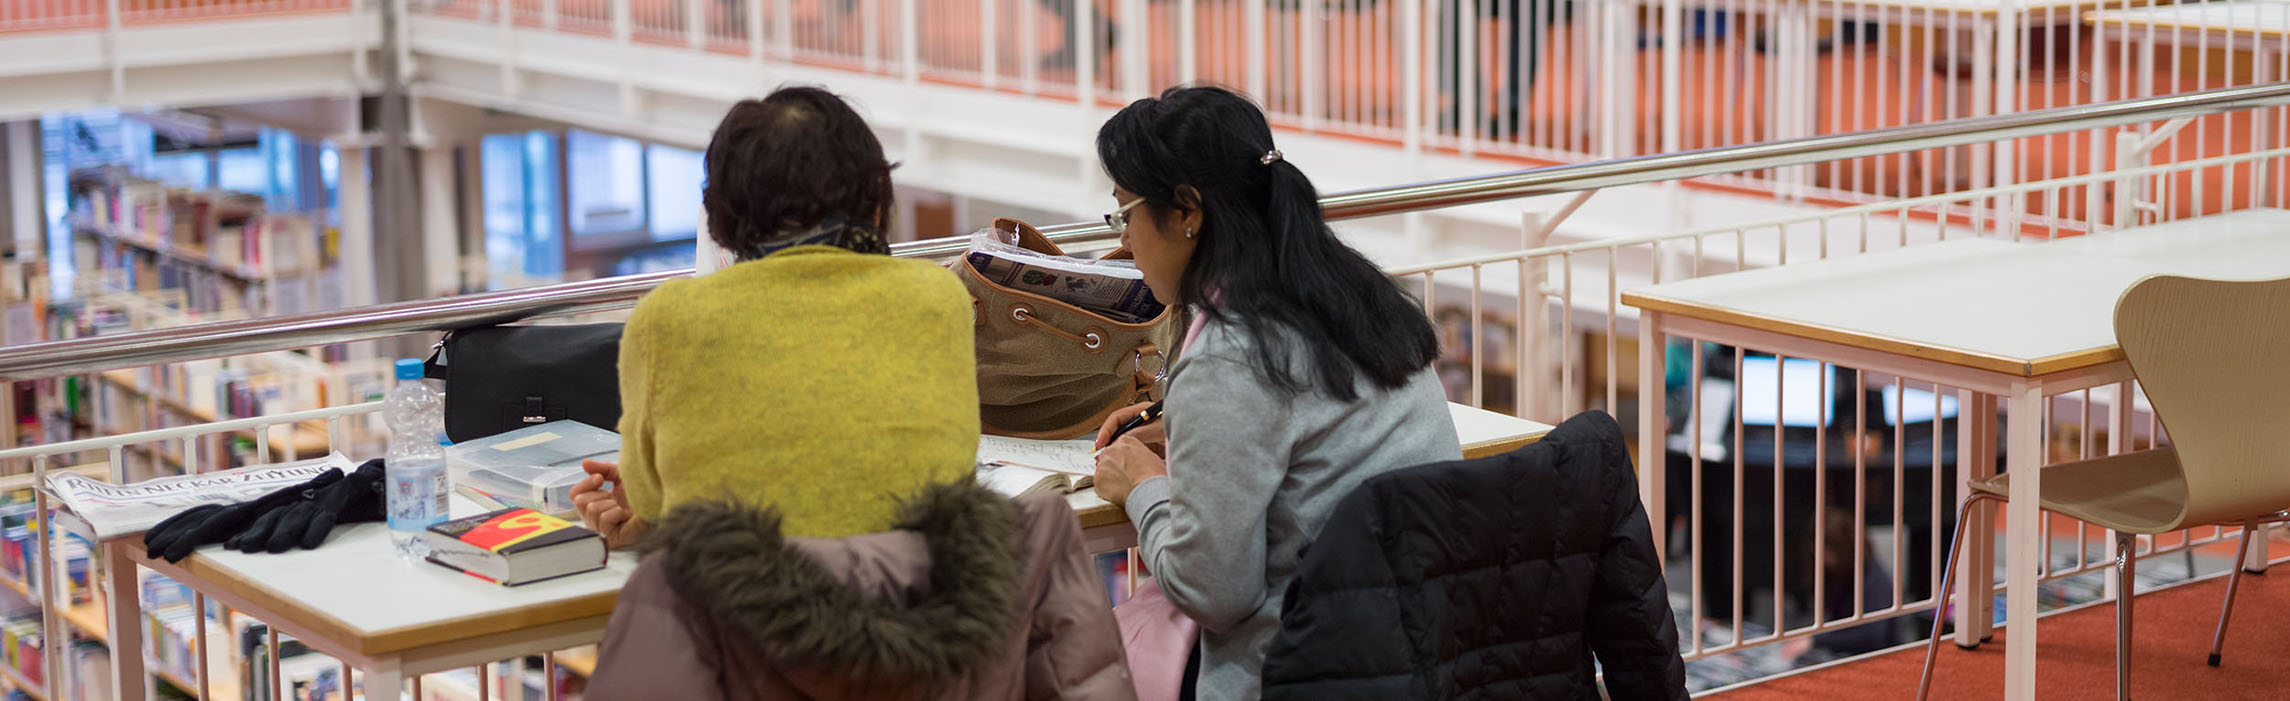 Two students studying in the library. (Photo: Diemer)